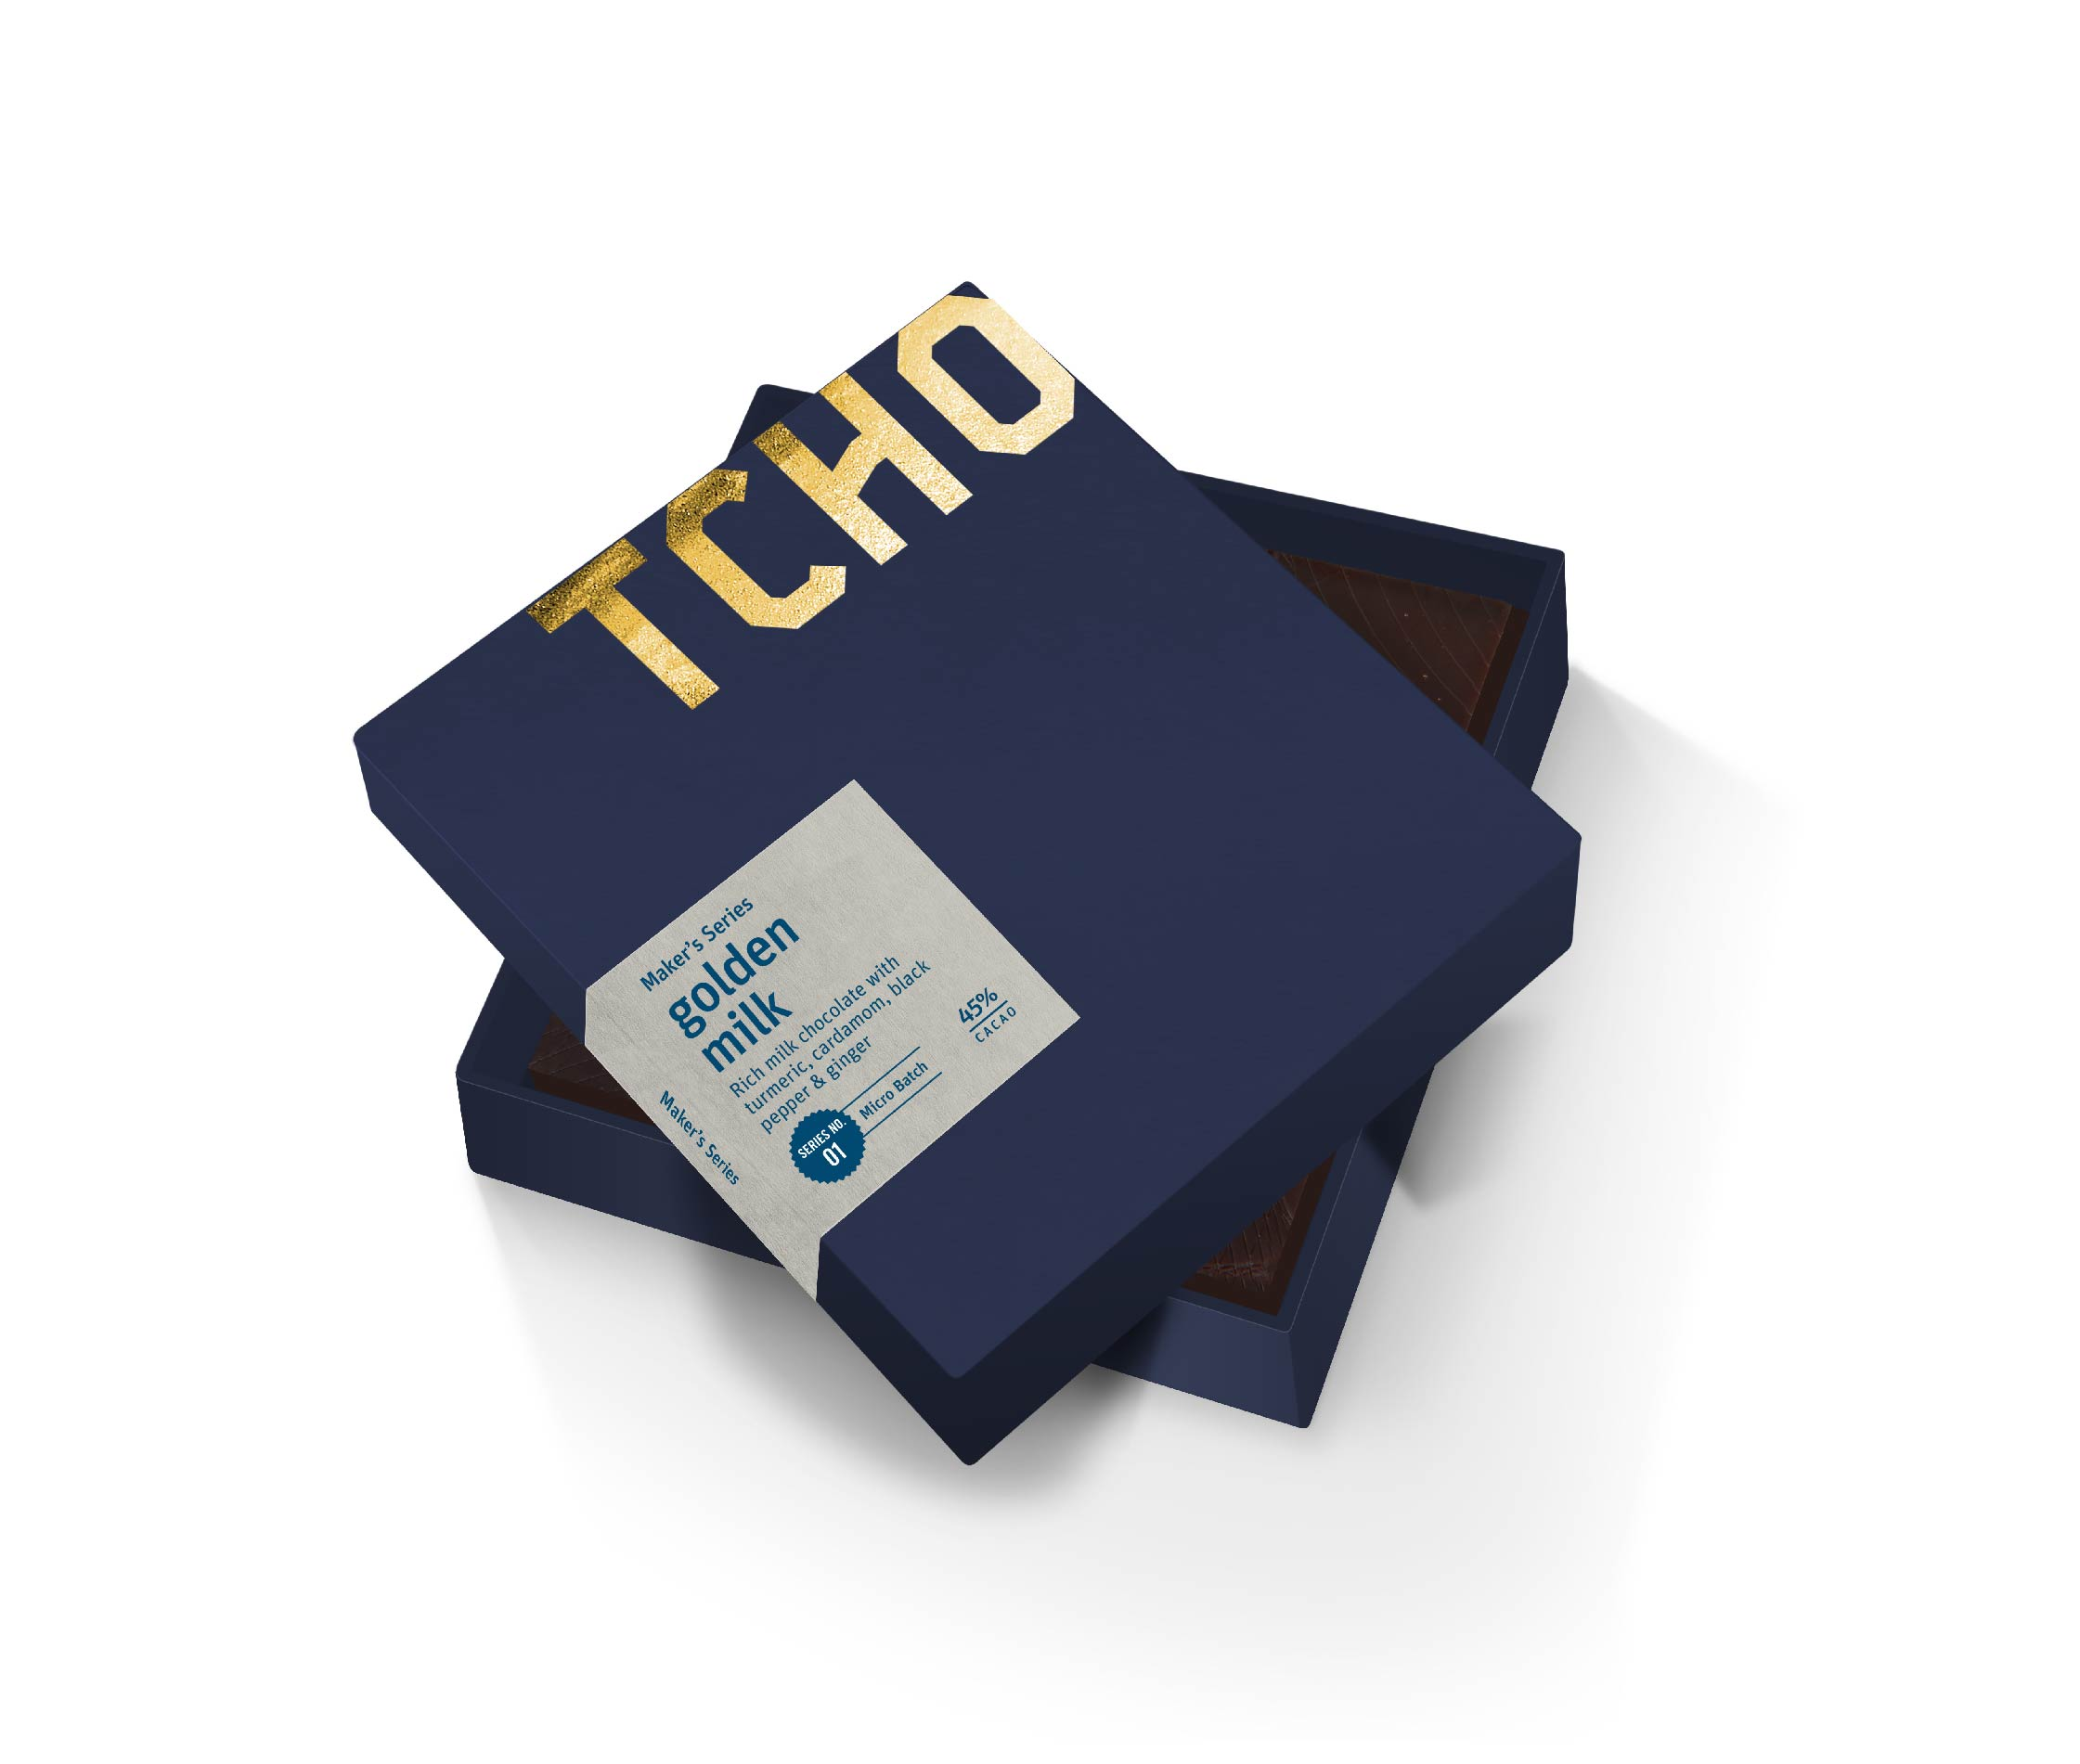 Packaging design for Tcho chocolate maker's series